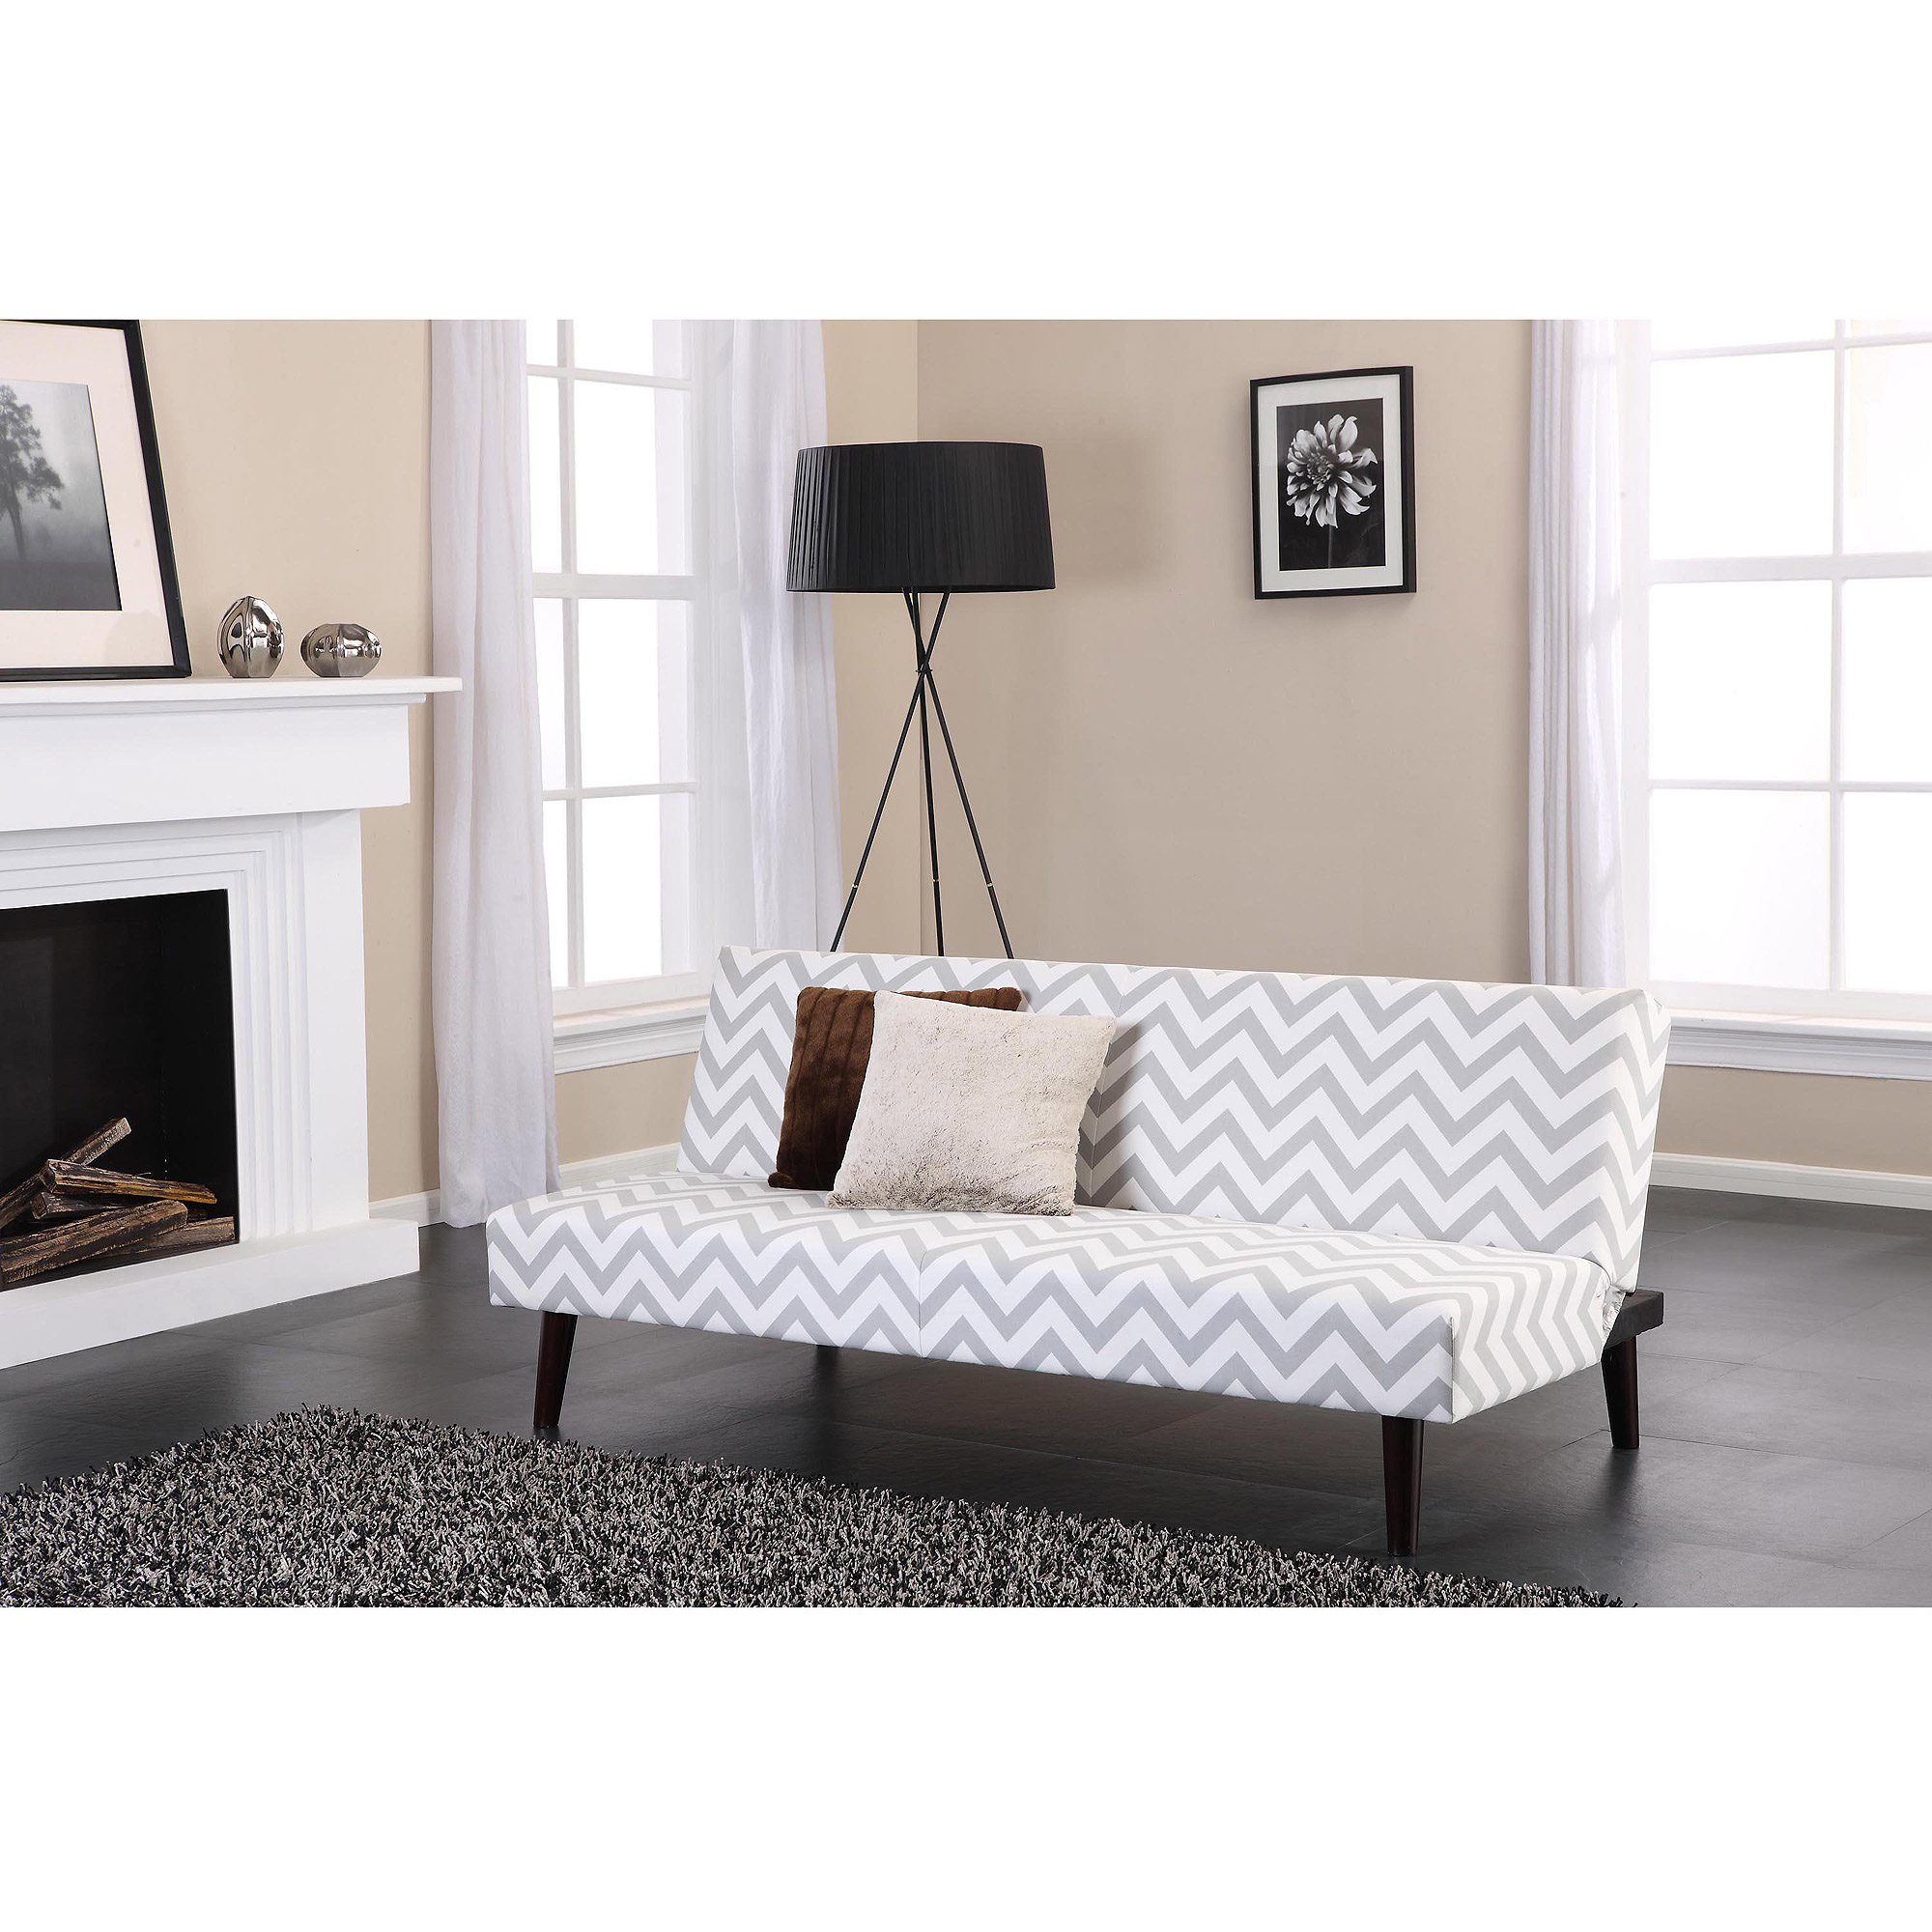 Allegra Pillow Top Futon Black Walmartcom